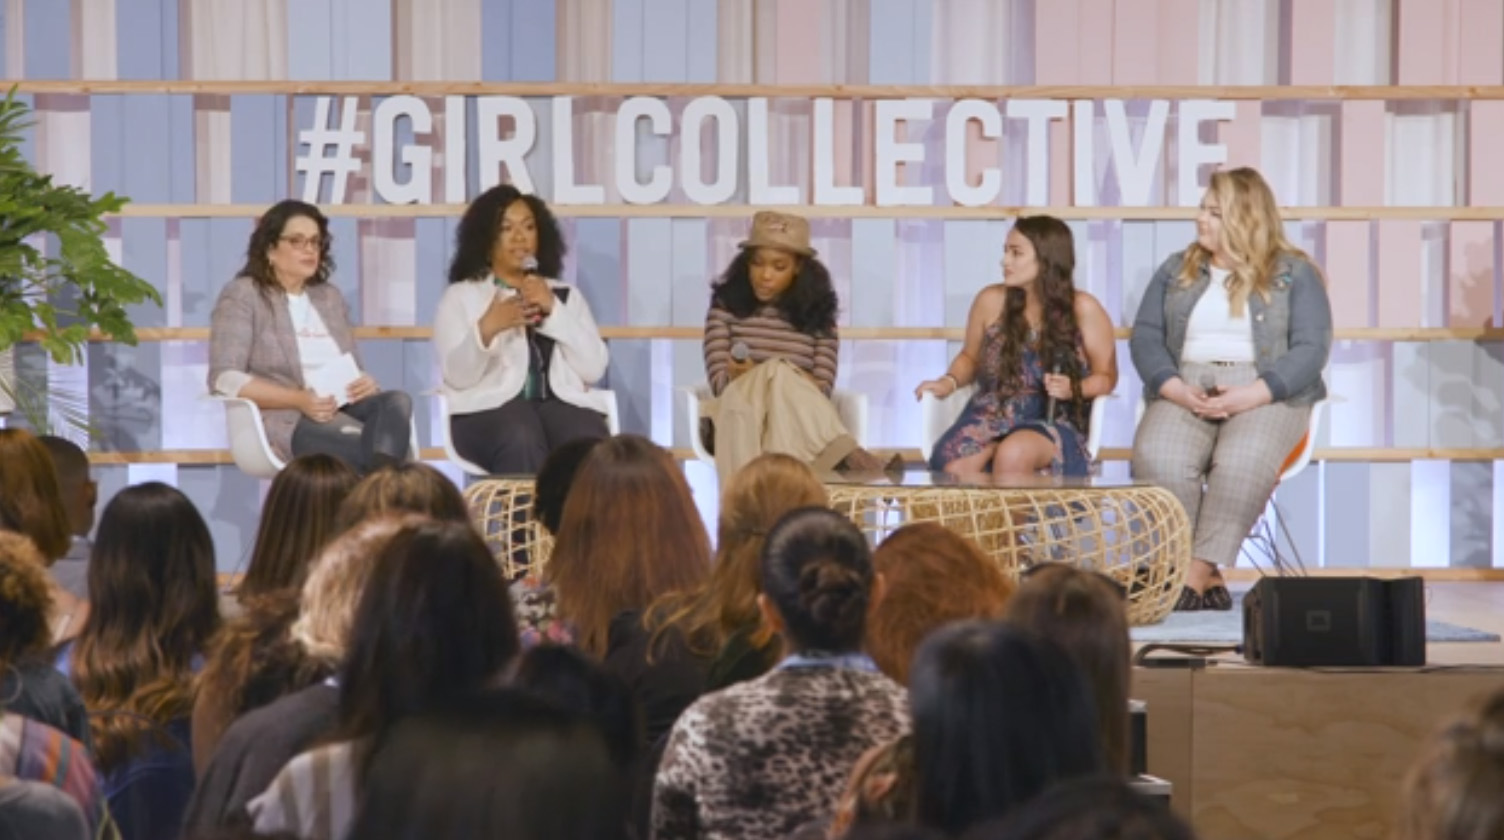 The Dove Self-Esteem Project And Shonda Rhimes Team Up To Launch Girl Collective: An Unprecedented Sisterhood Of Women And Girls On A Mission To Raise The Self Esteem Of The Next Generation